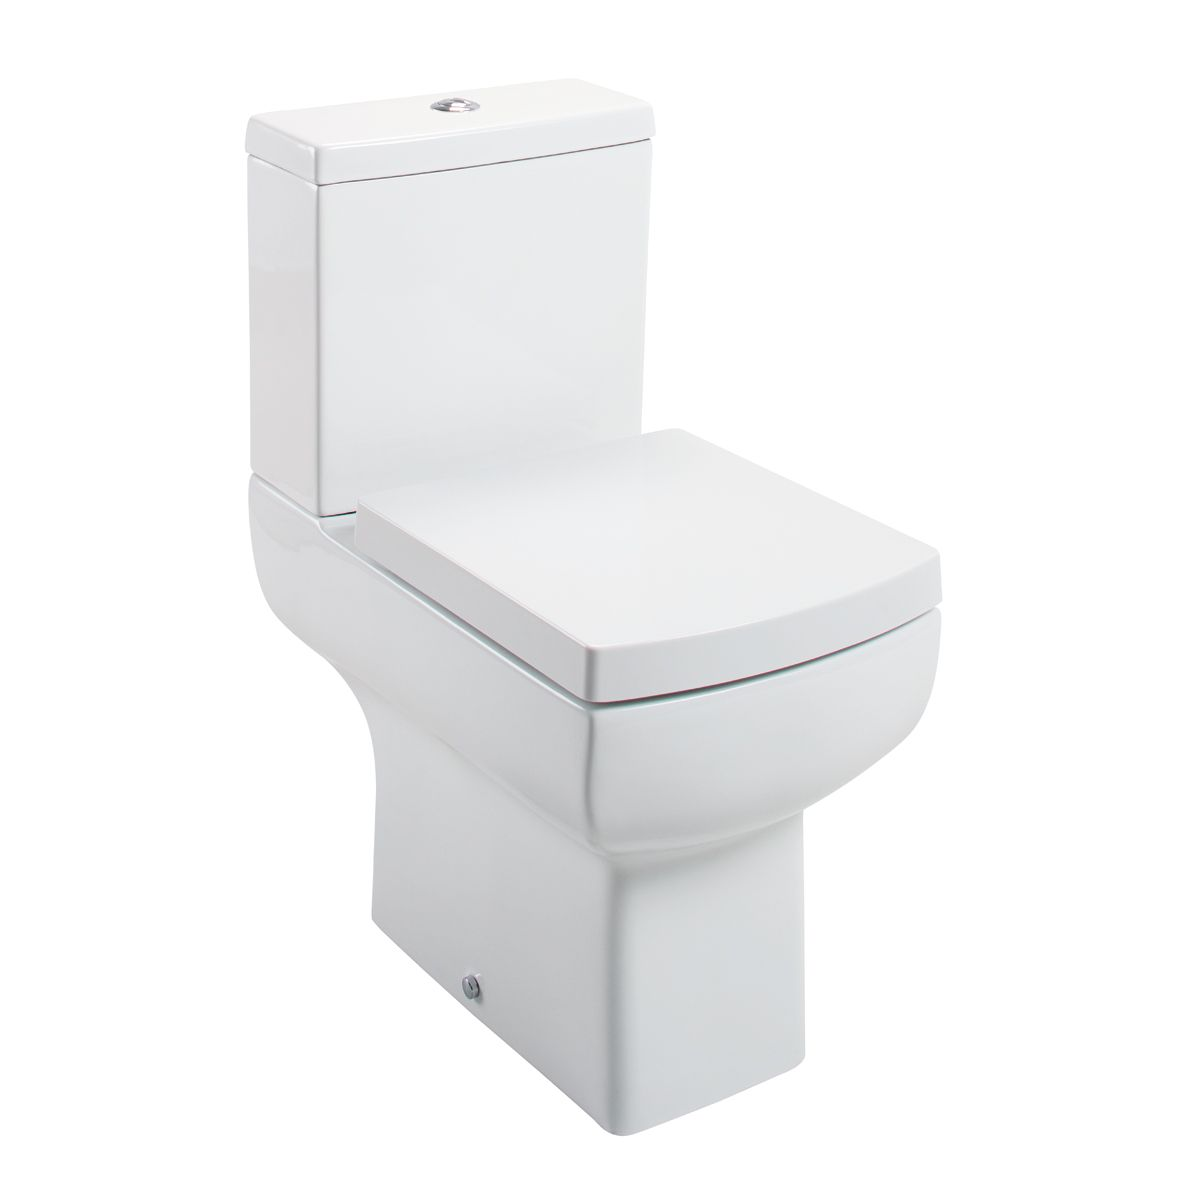 Cassellie Daisy Lou Close Coupled Toilet